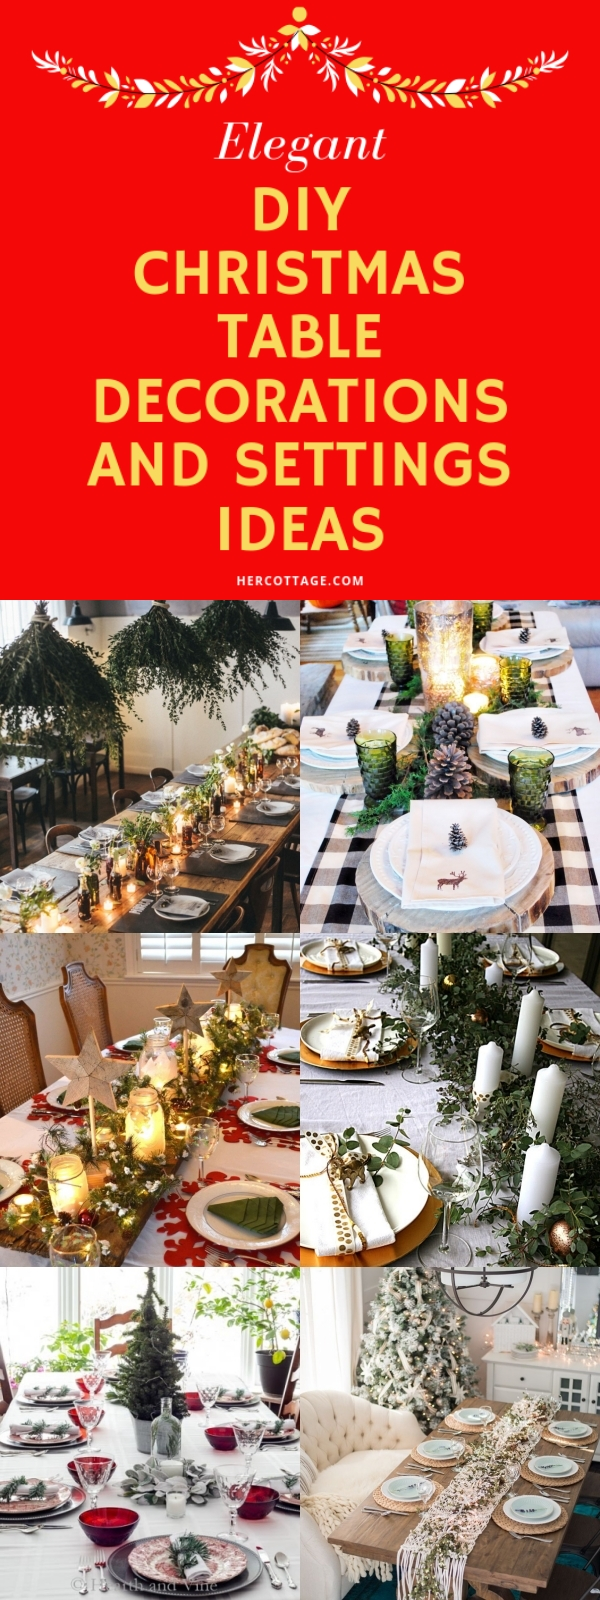 40 Elegant Diy Christmas Table Decorations And Settings Ideas Hercottage